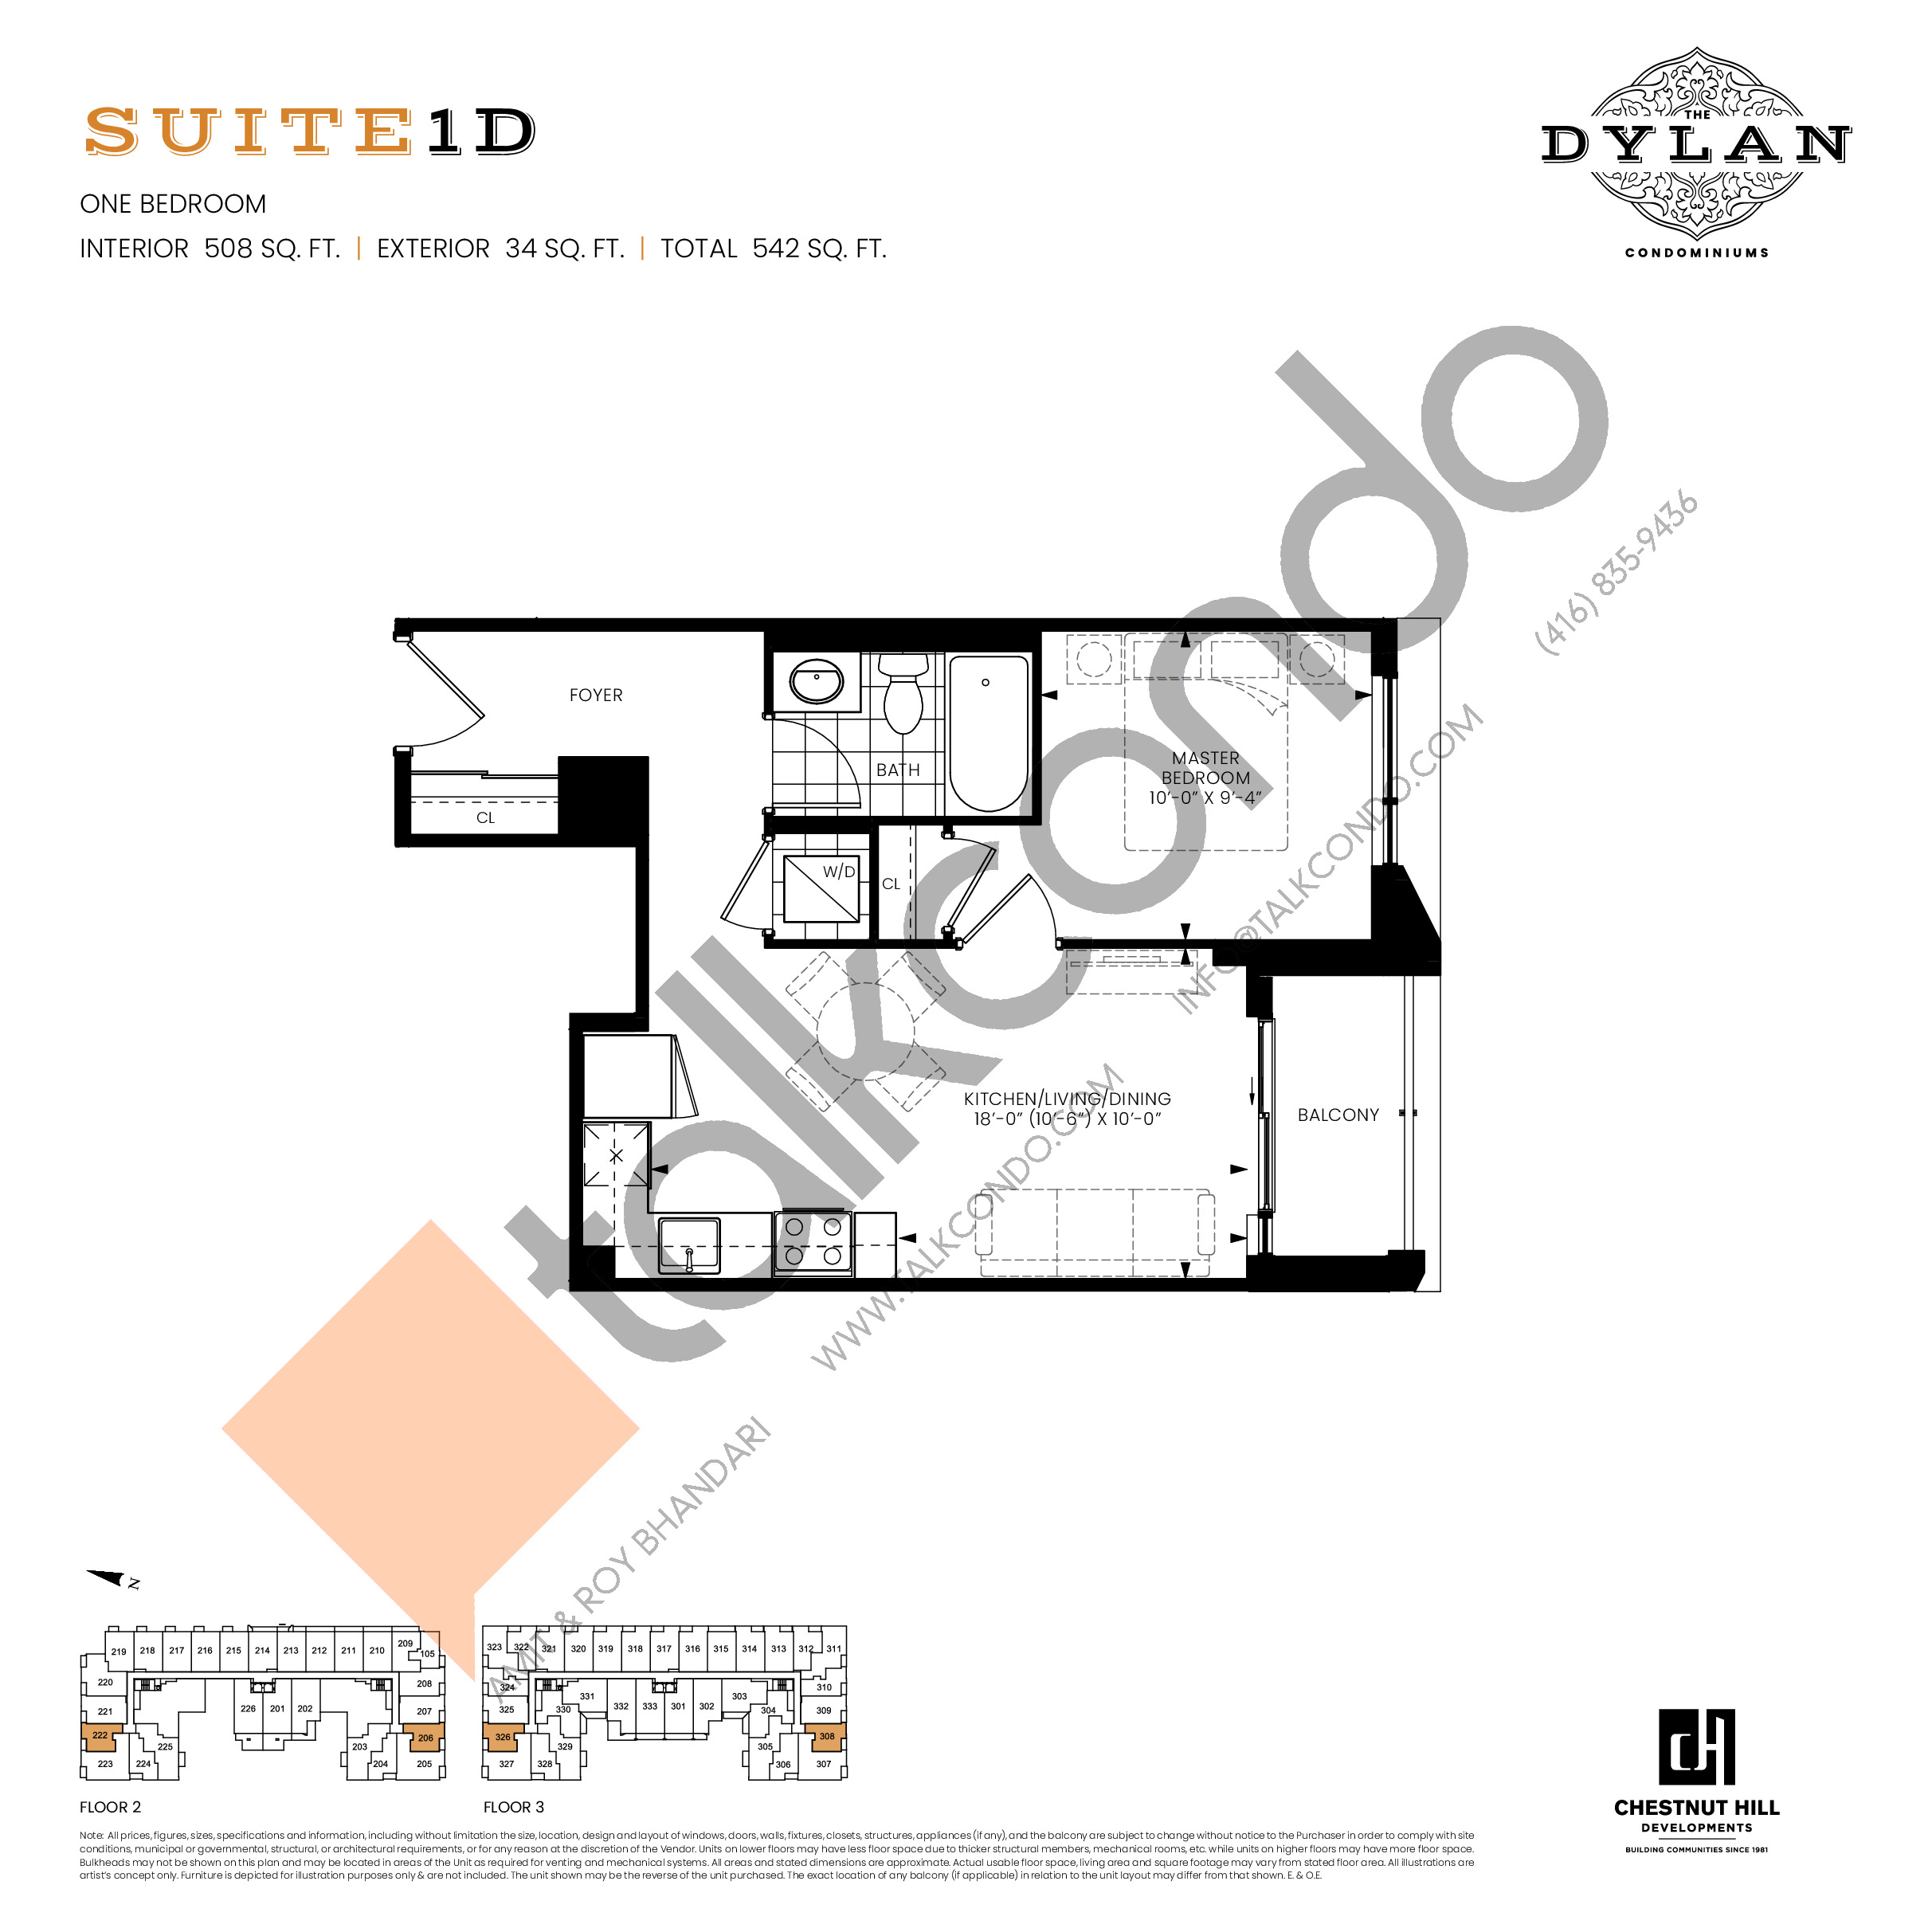 Suite 1D Floor Plan at The Dylan Condos - 508 sq.ft